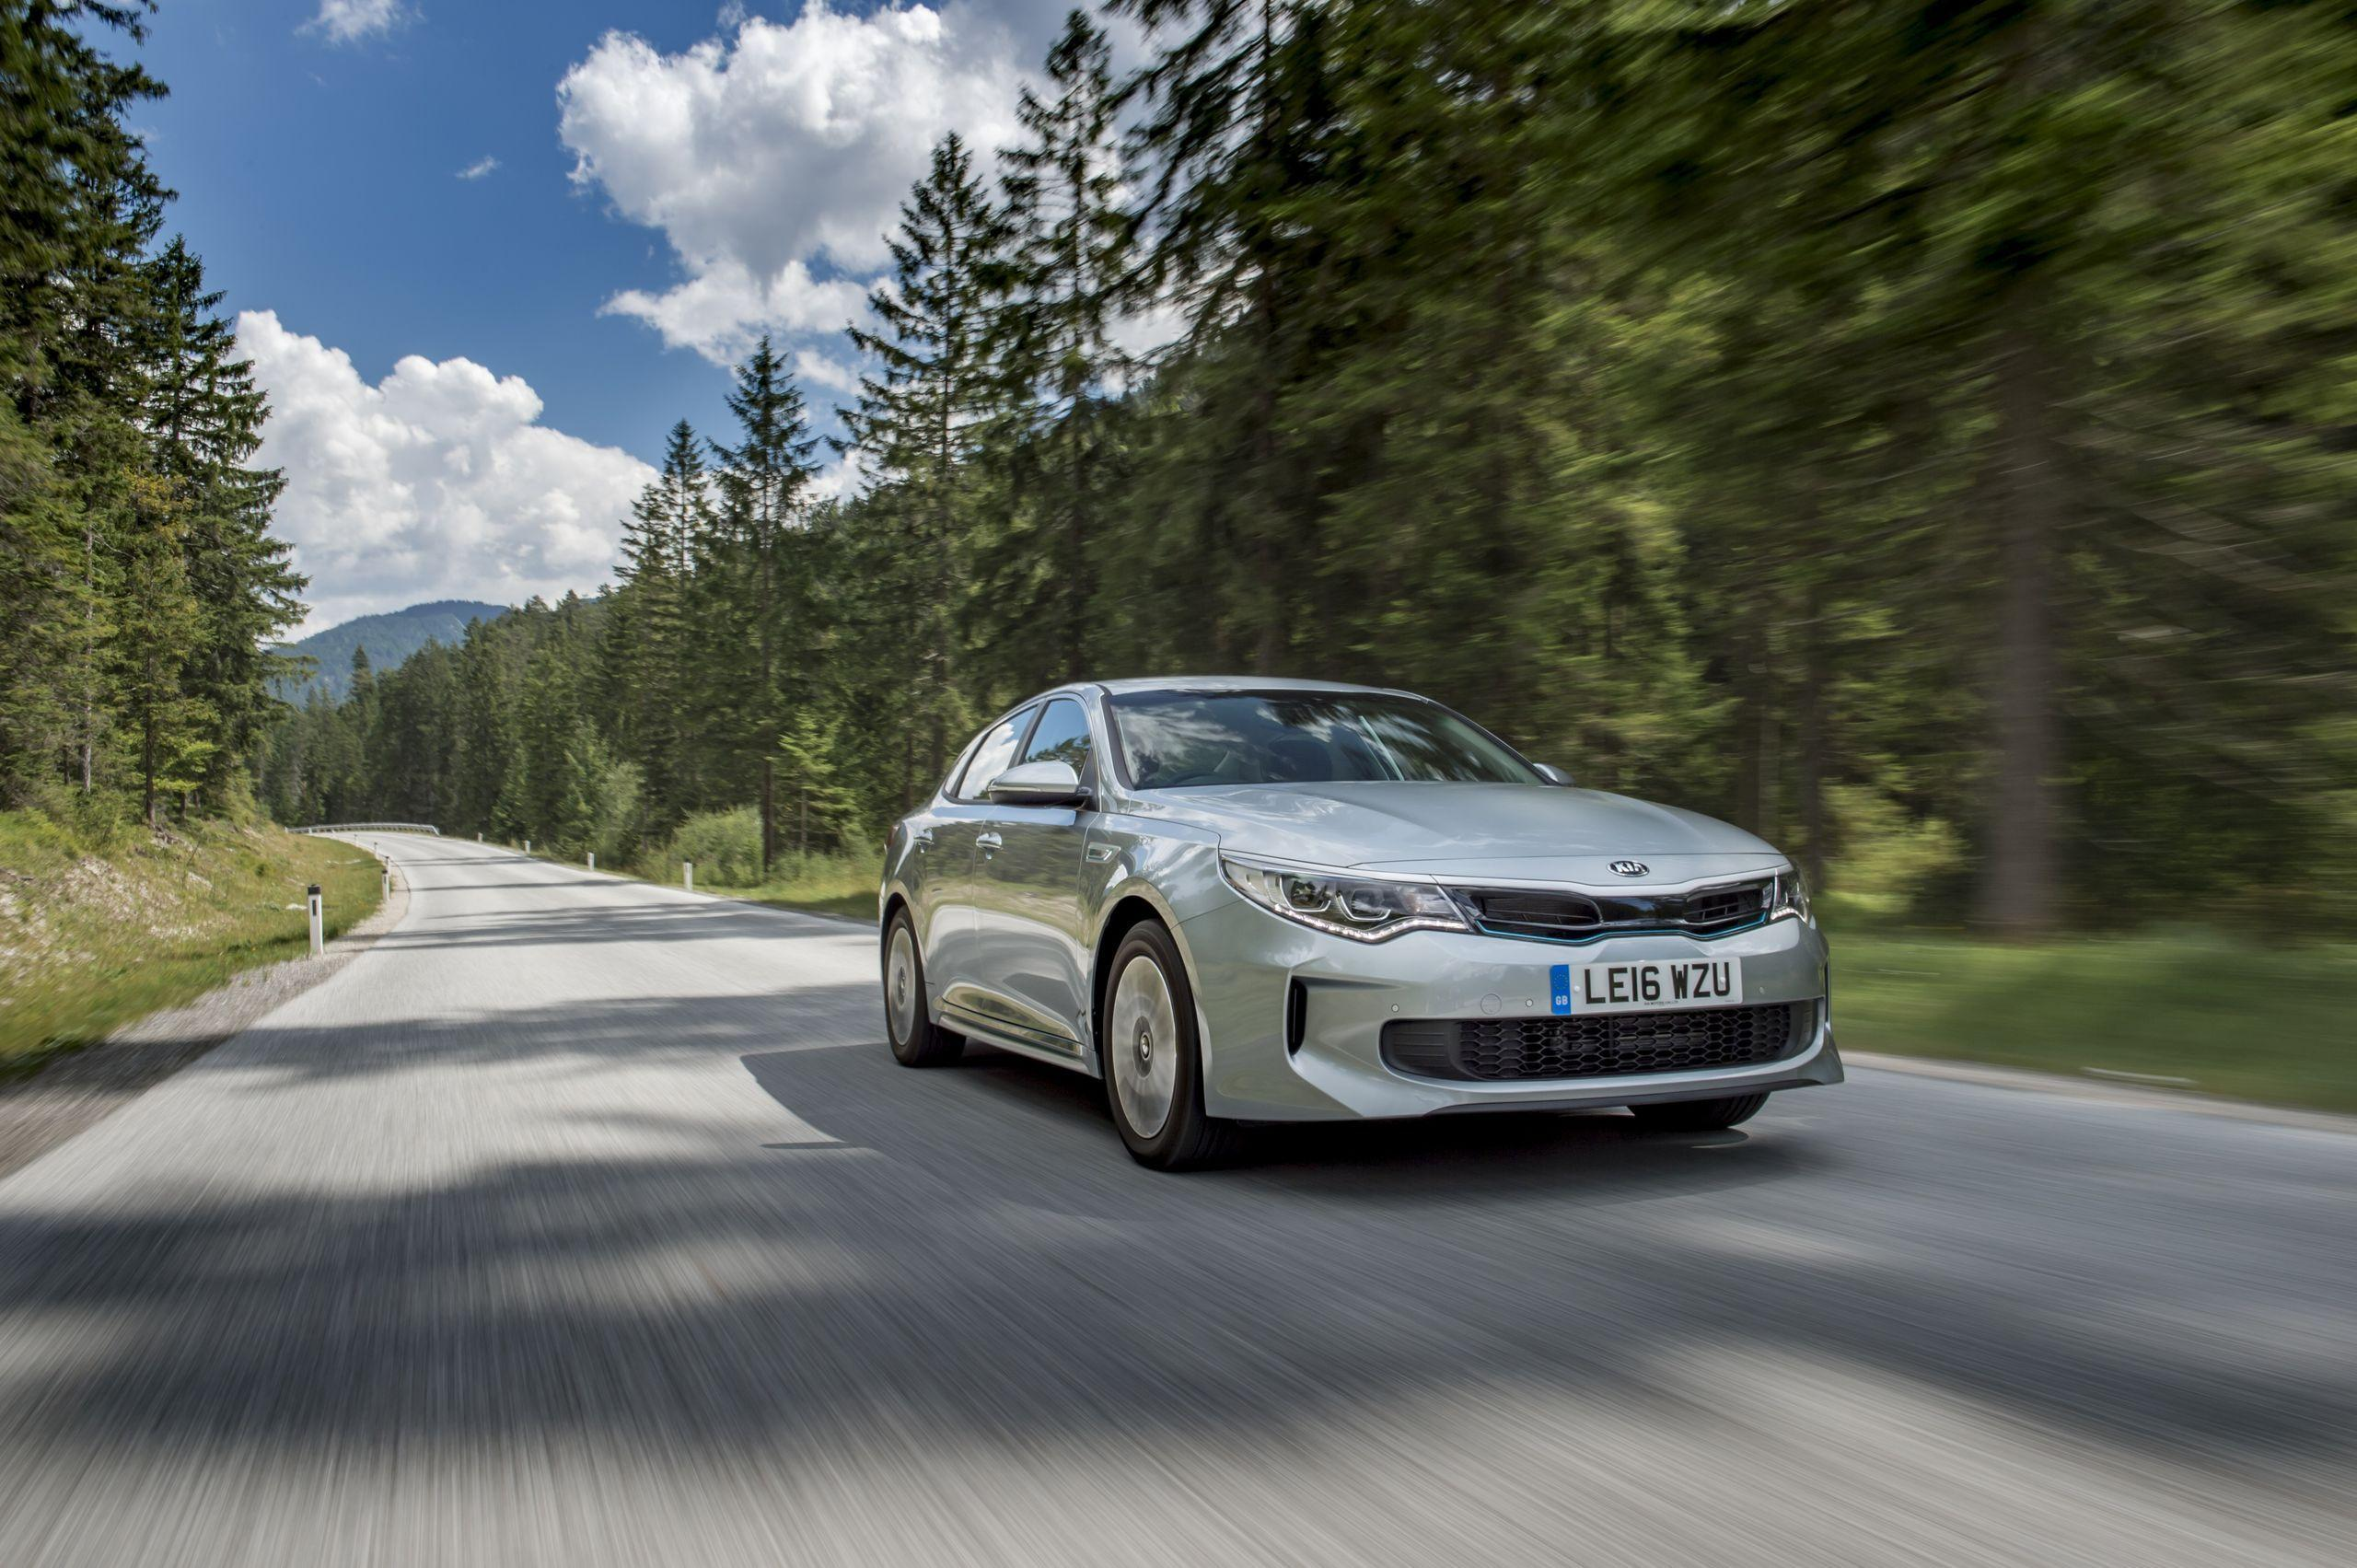 Wallpaper Wednesday: Kia Optima Plug-In Hybrid